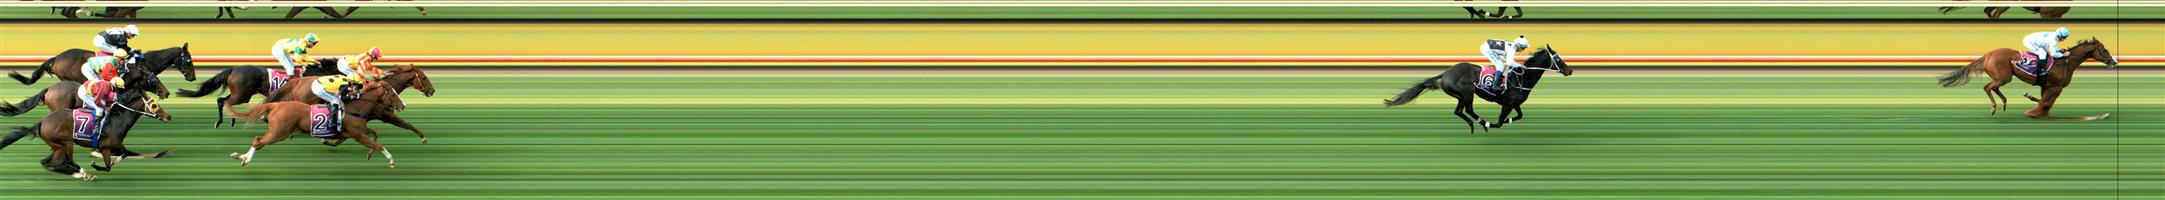 HORSHAM Race 2 No. 3 Done Good @ $3.50 (1.5 UNITS WIN)   Result : Unplaced at SP $5.50. Enjoyed a nice trail behind the leaders in the run but dropped out on the home turn as it was placed under pressure. Outcome -1.50 Units.